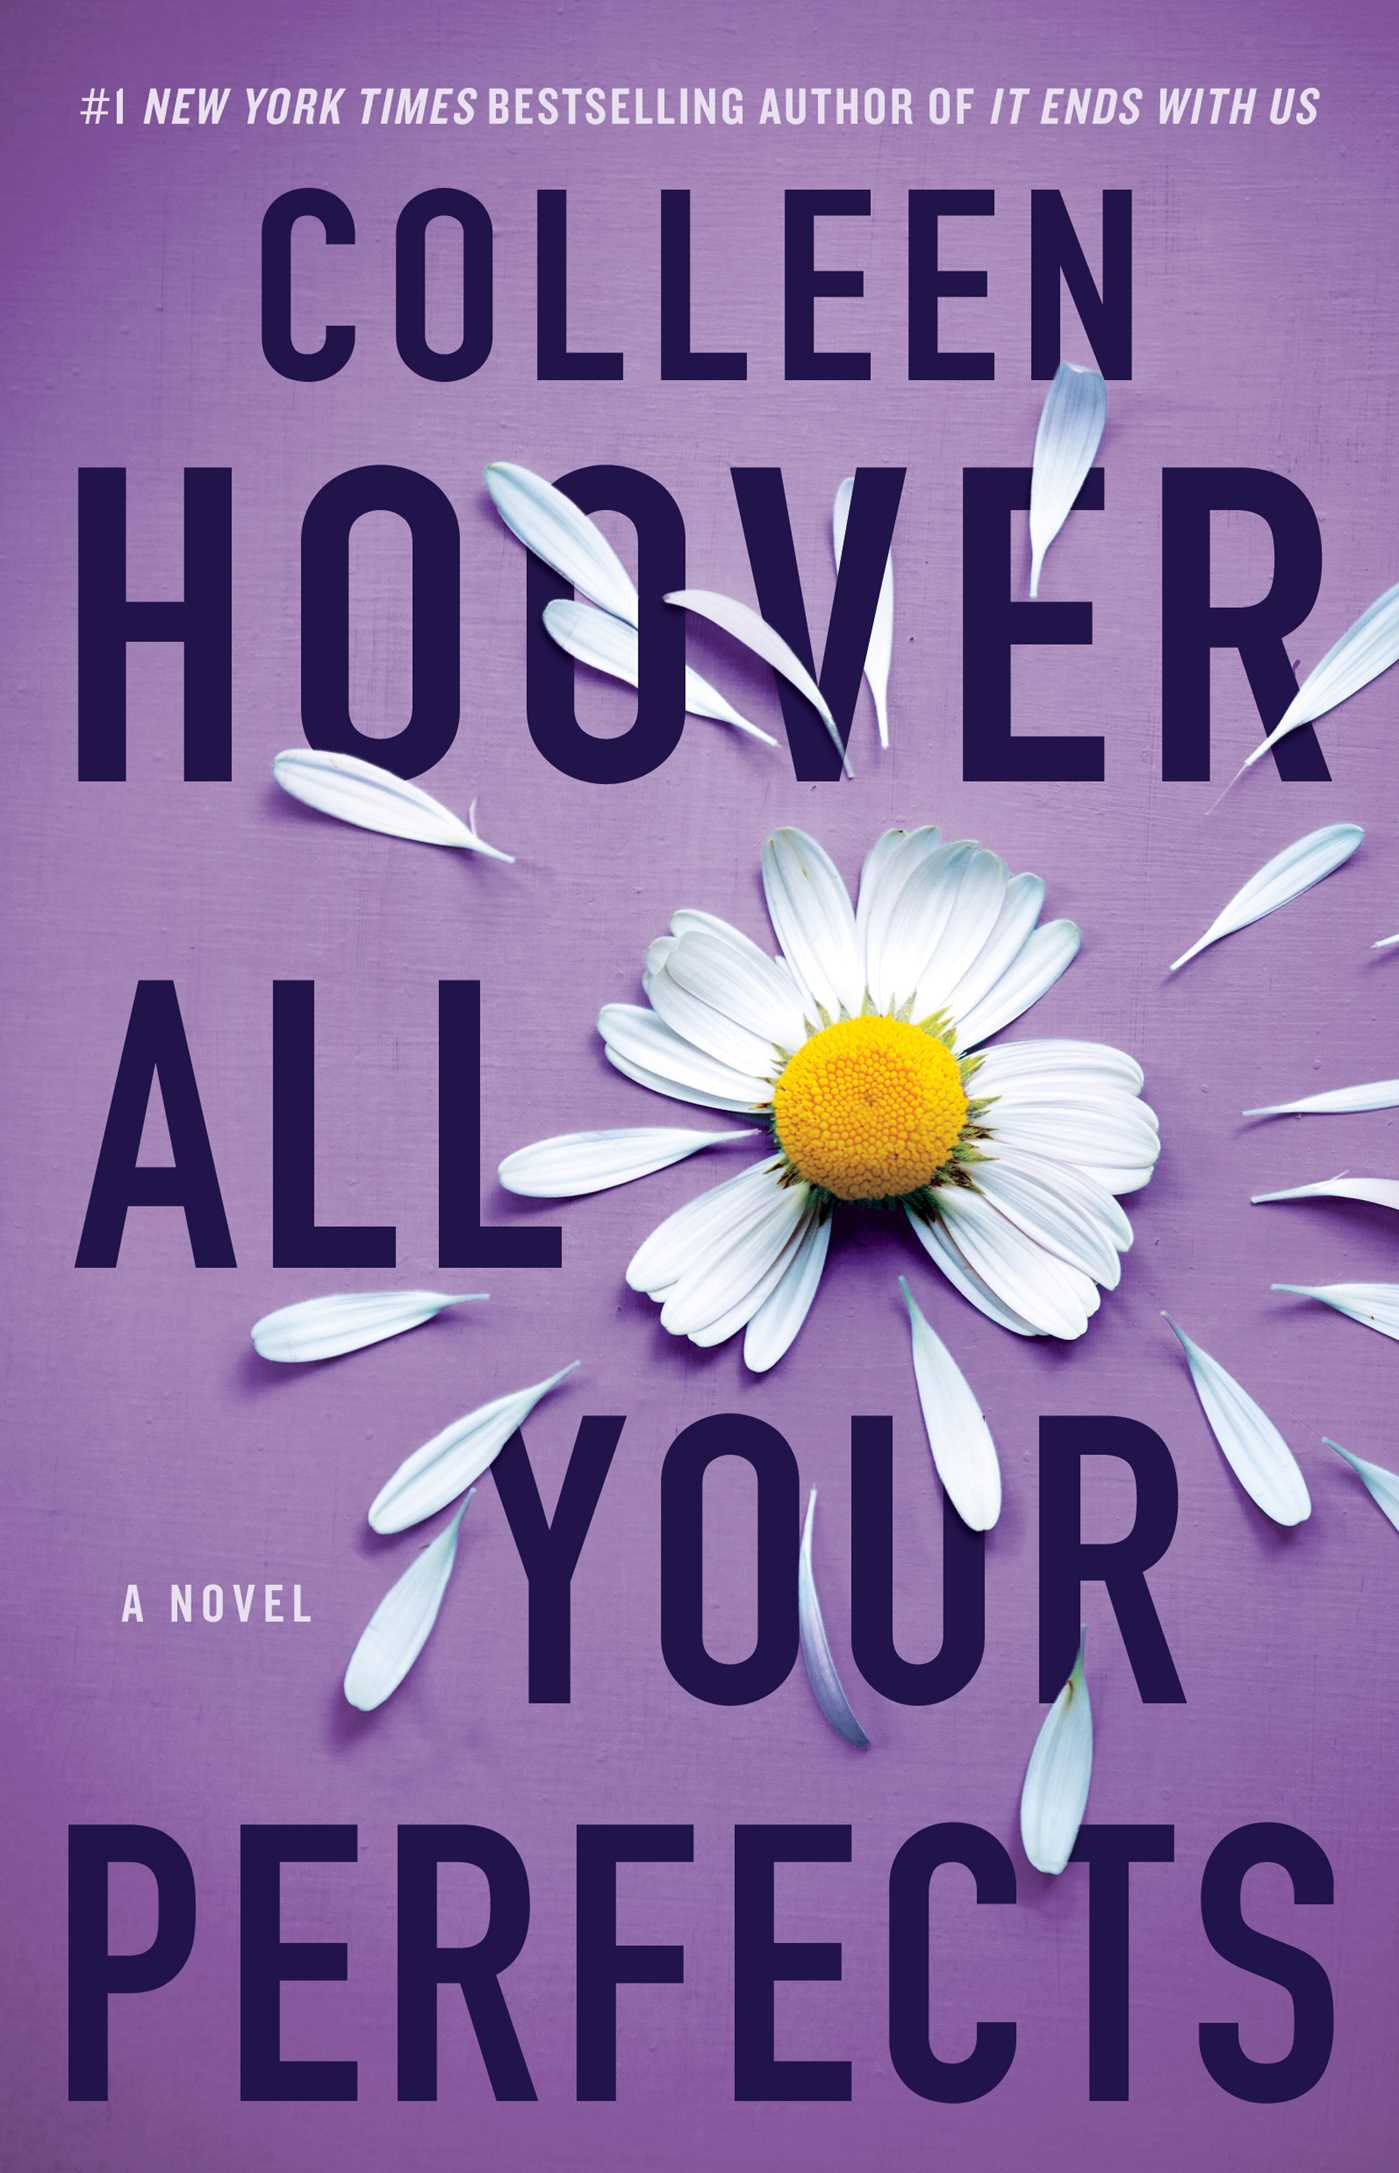 All your perfects ebook by colleen hoover official publisher page ebook 9781501171604 author photo jpg colleen hoover fandeluxe Gallery